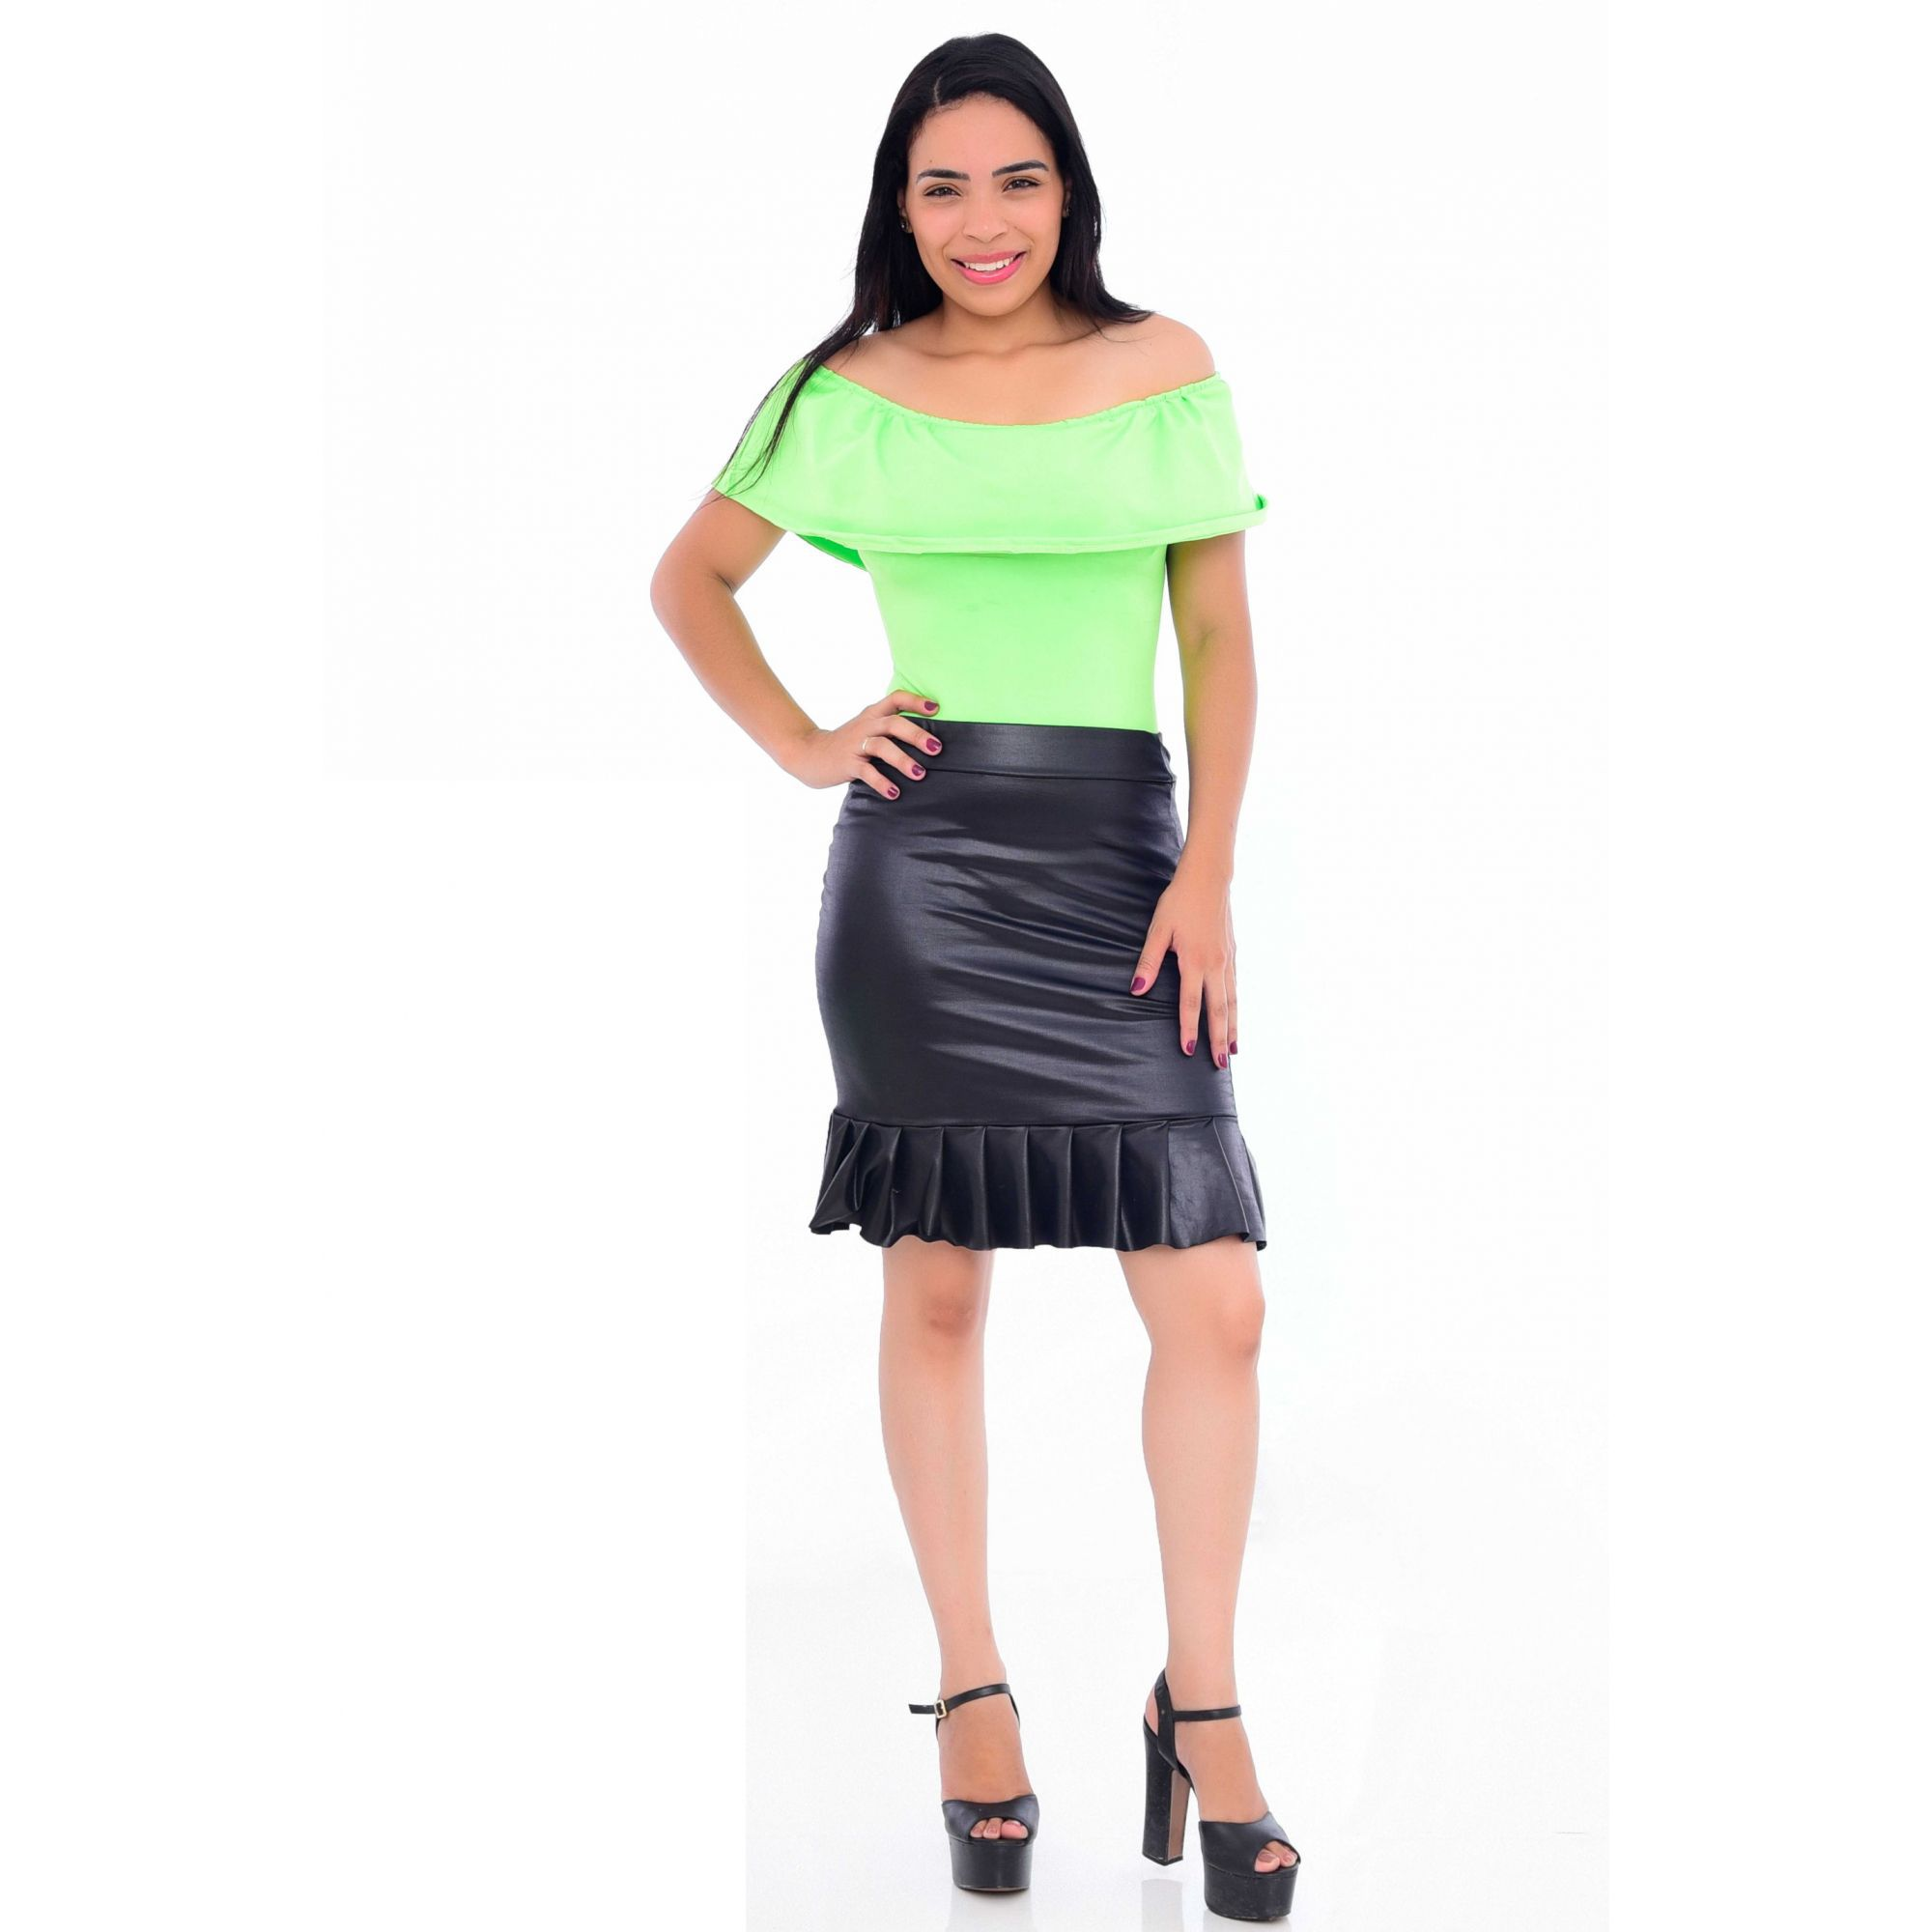 Body Feminino Adulto Neon Verde  - Heitor Fashion Brazil